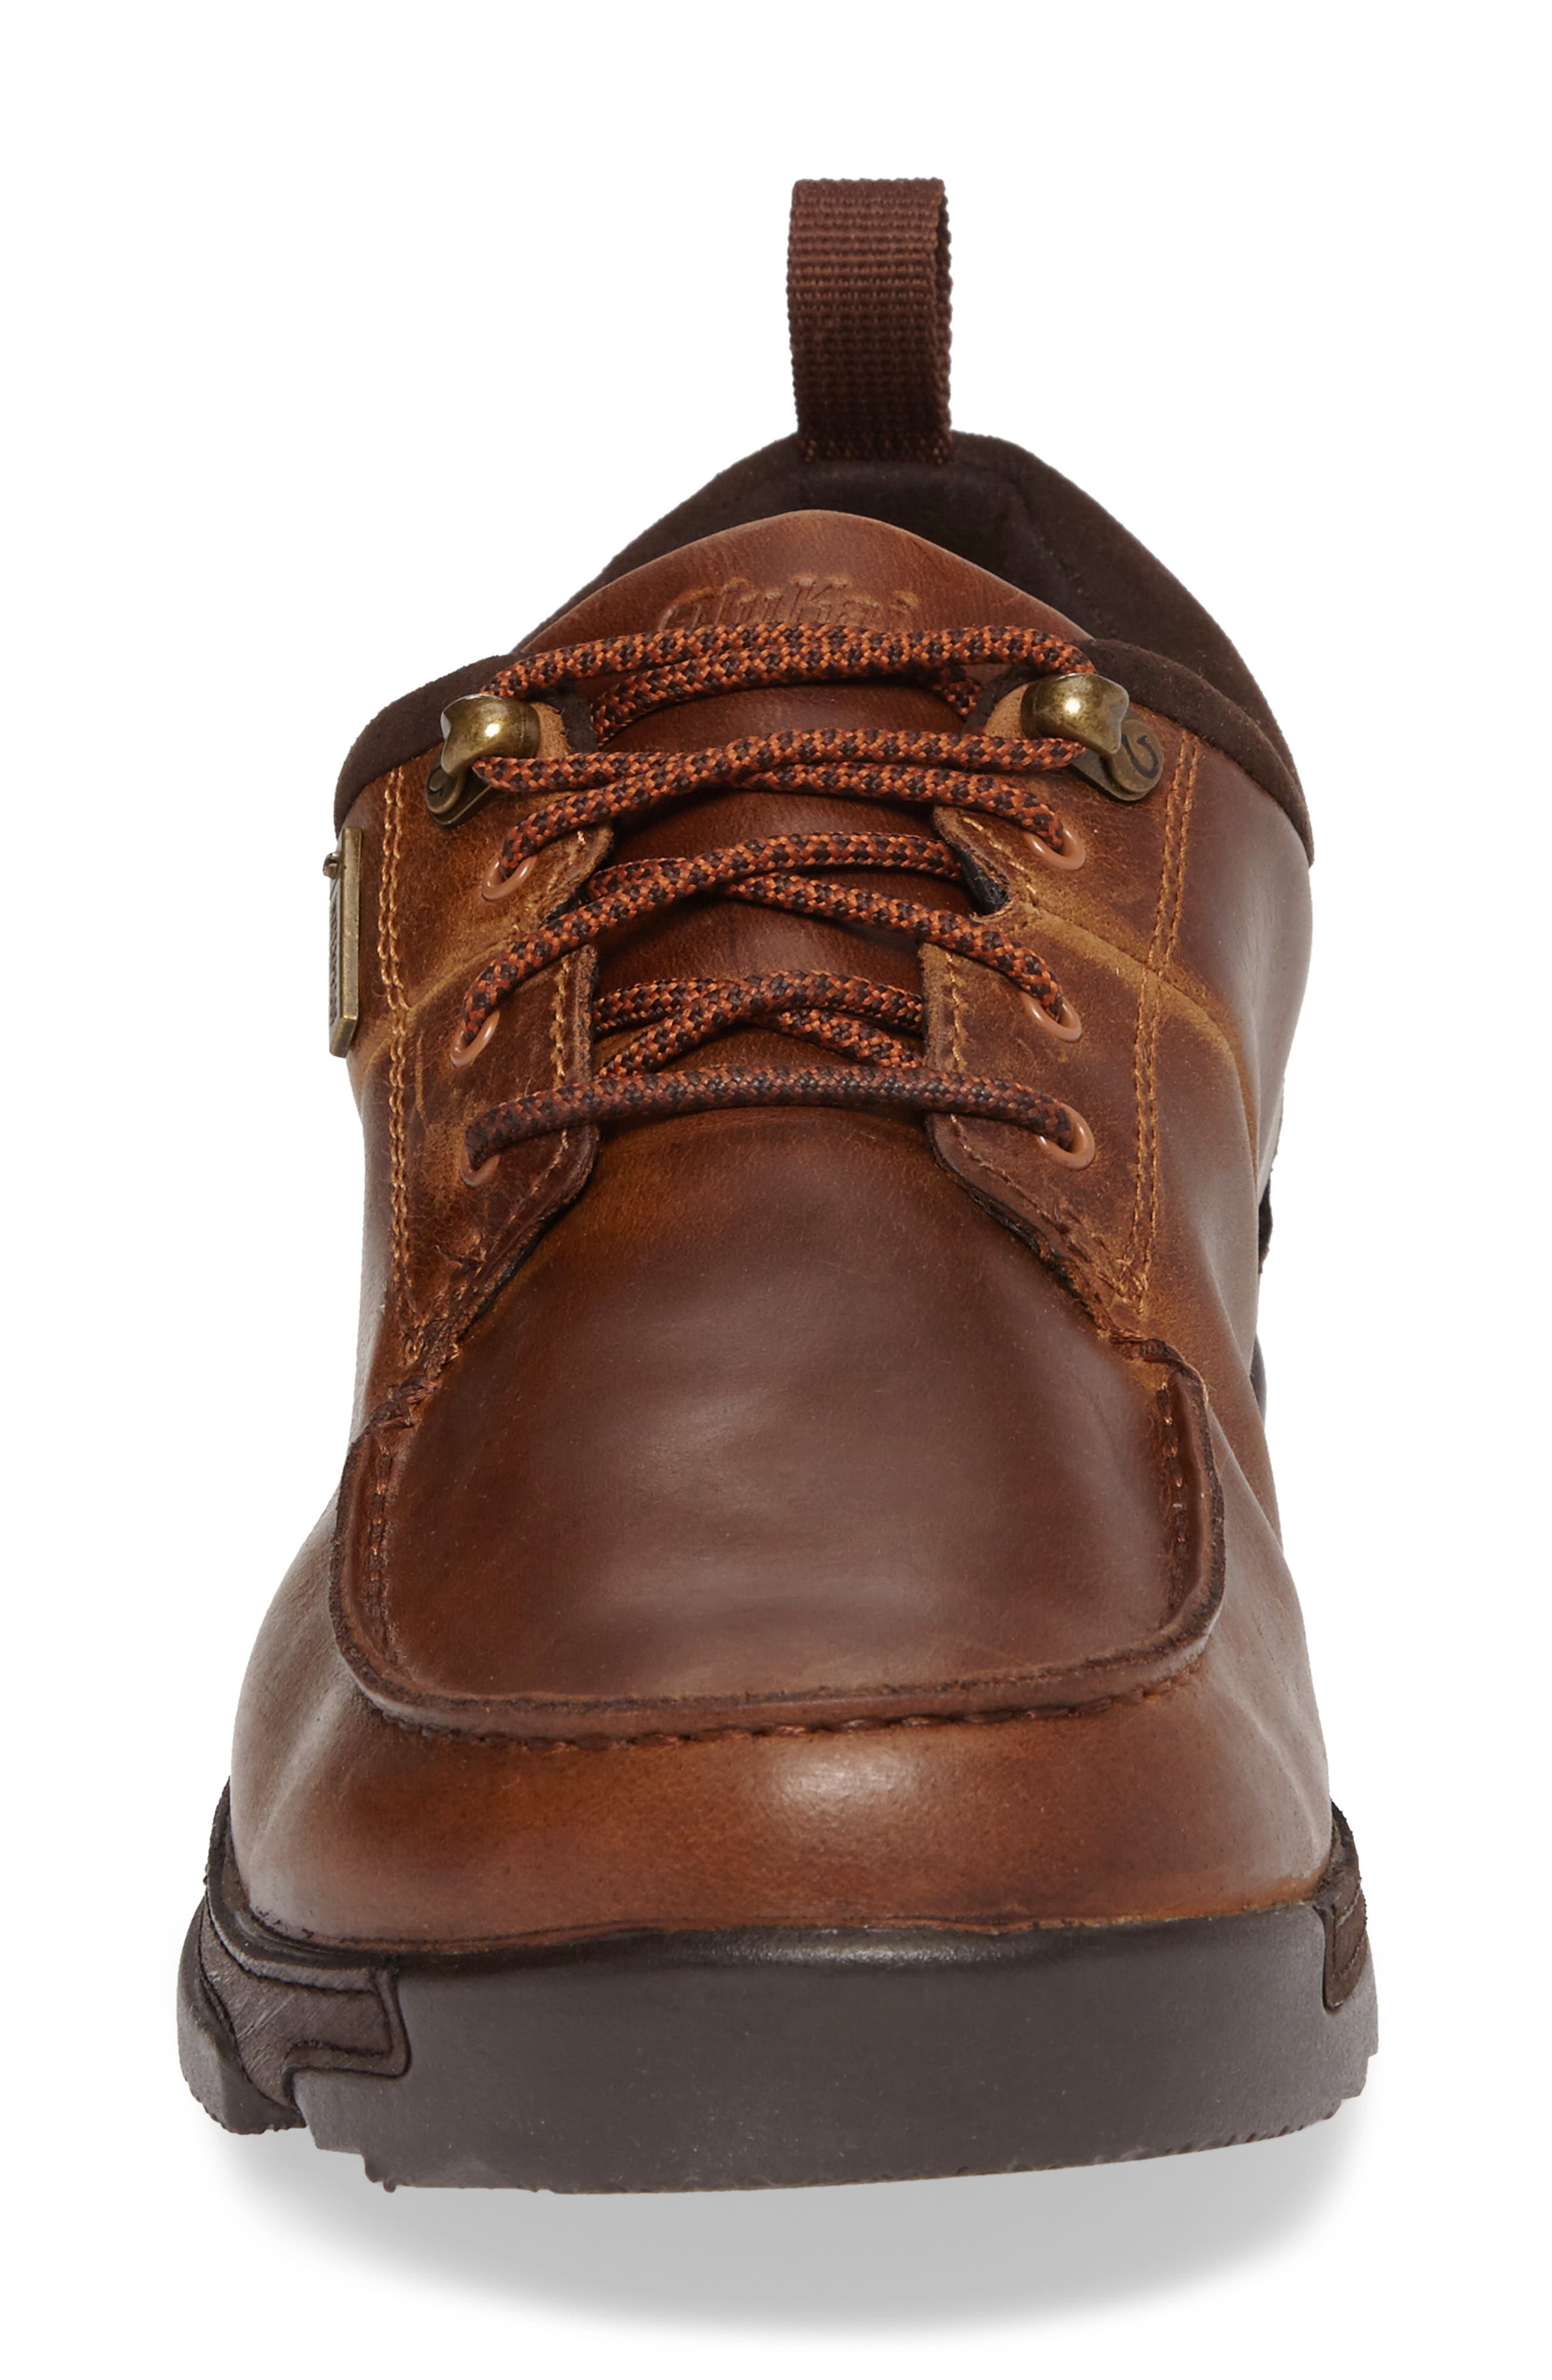 Makoa Waterproof Shoe,                             Alternate thumbnail 4, color,                             Fox/ Dark Wood Leather